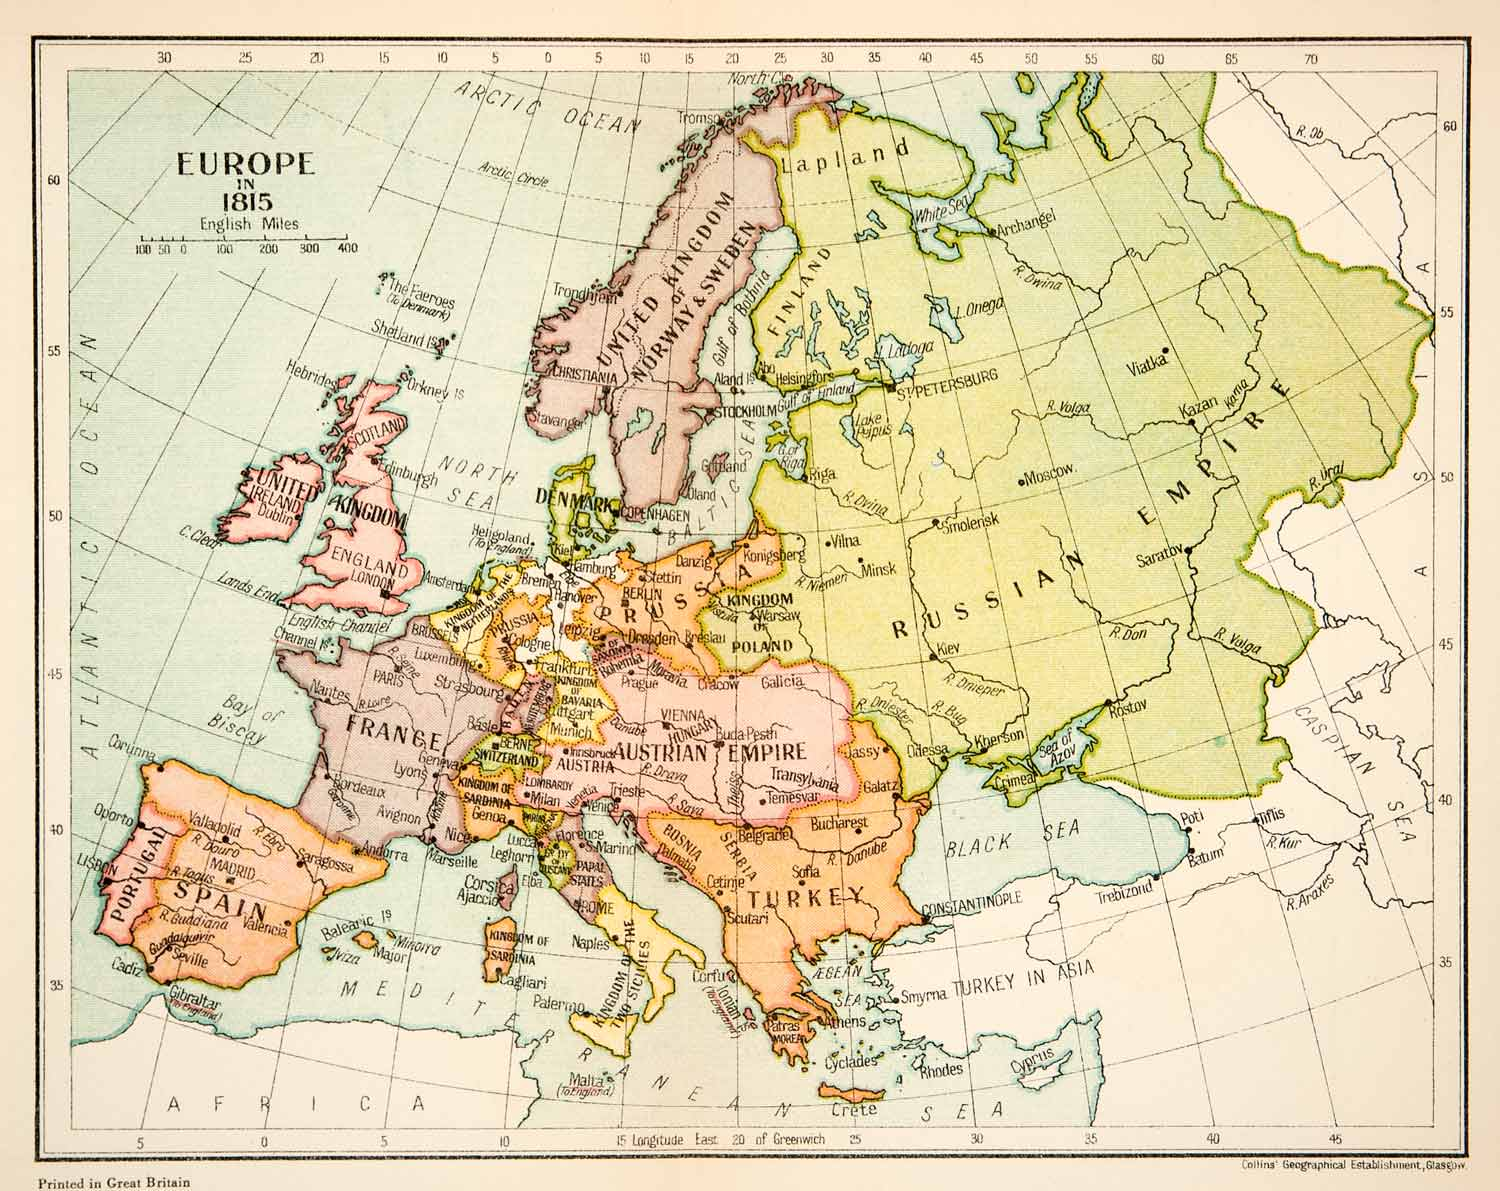 1926 Lithograph Map Europe 1815 Russian Empire France Turkey Spain ...